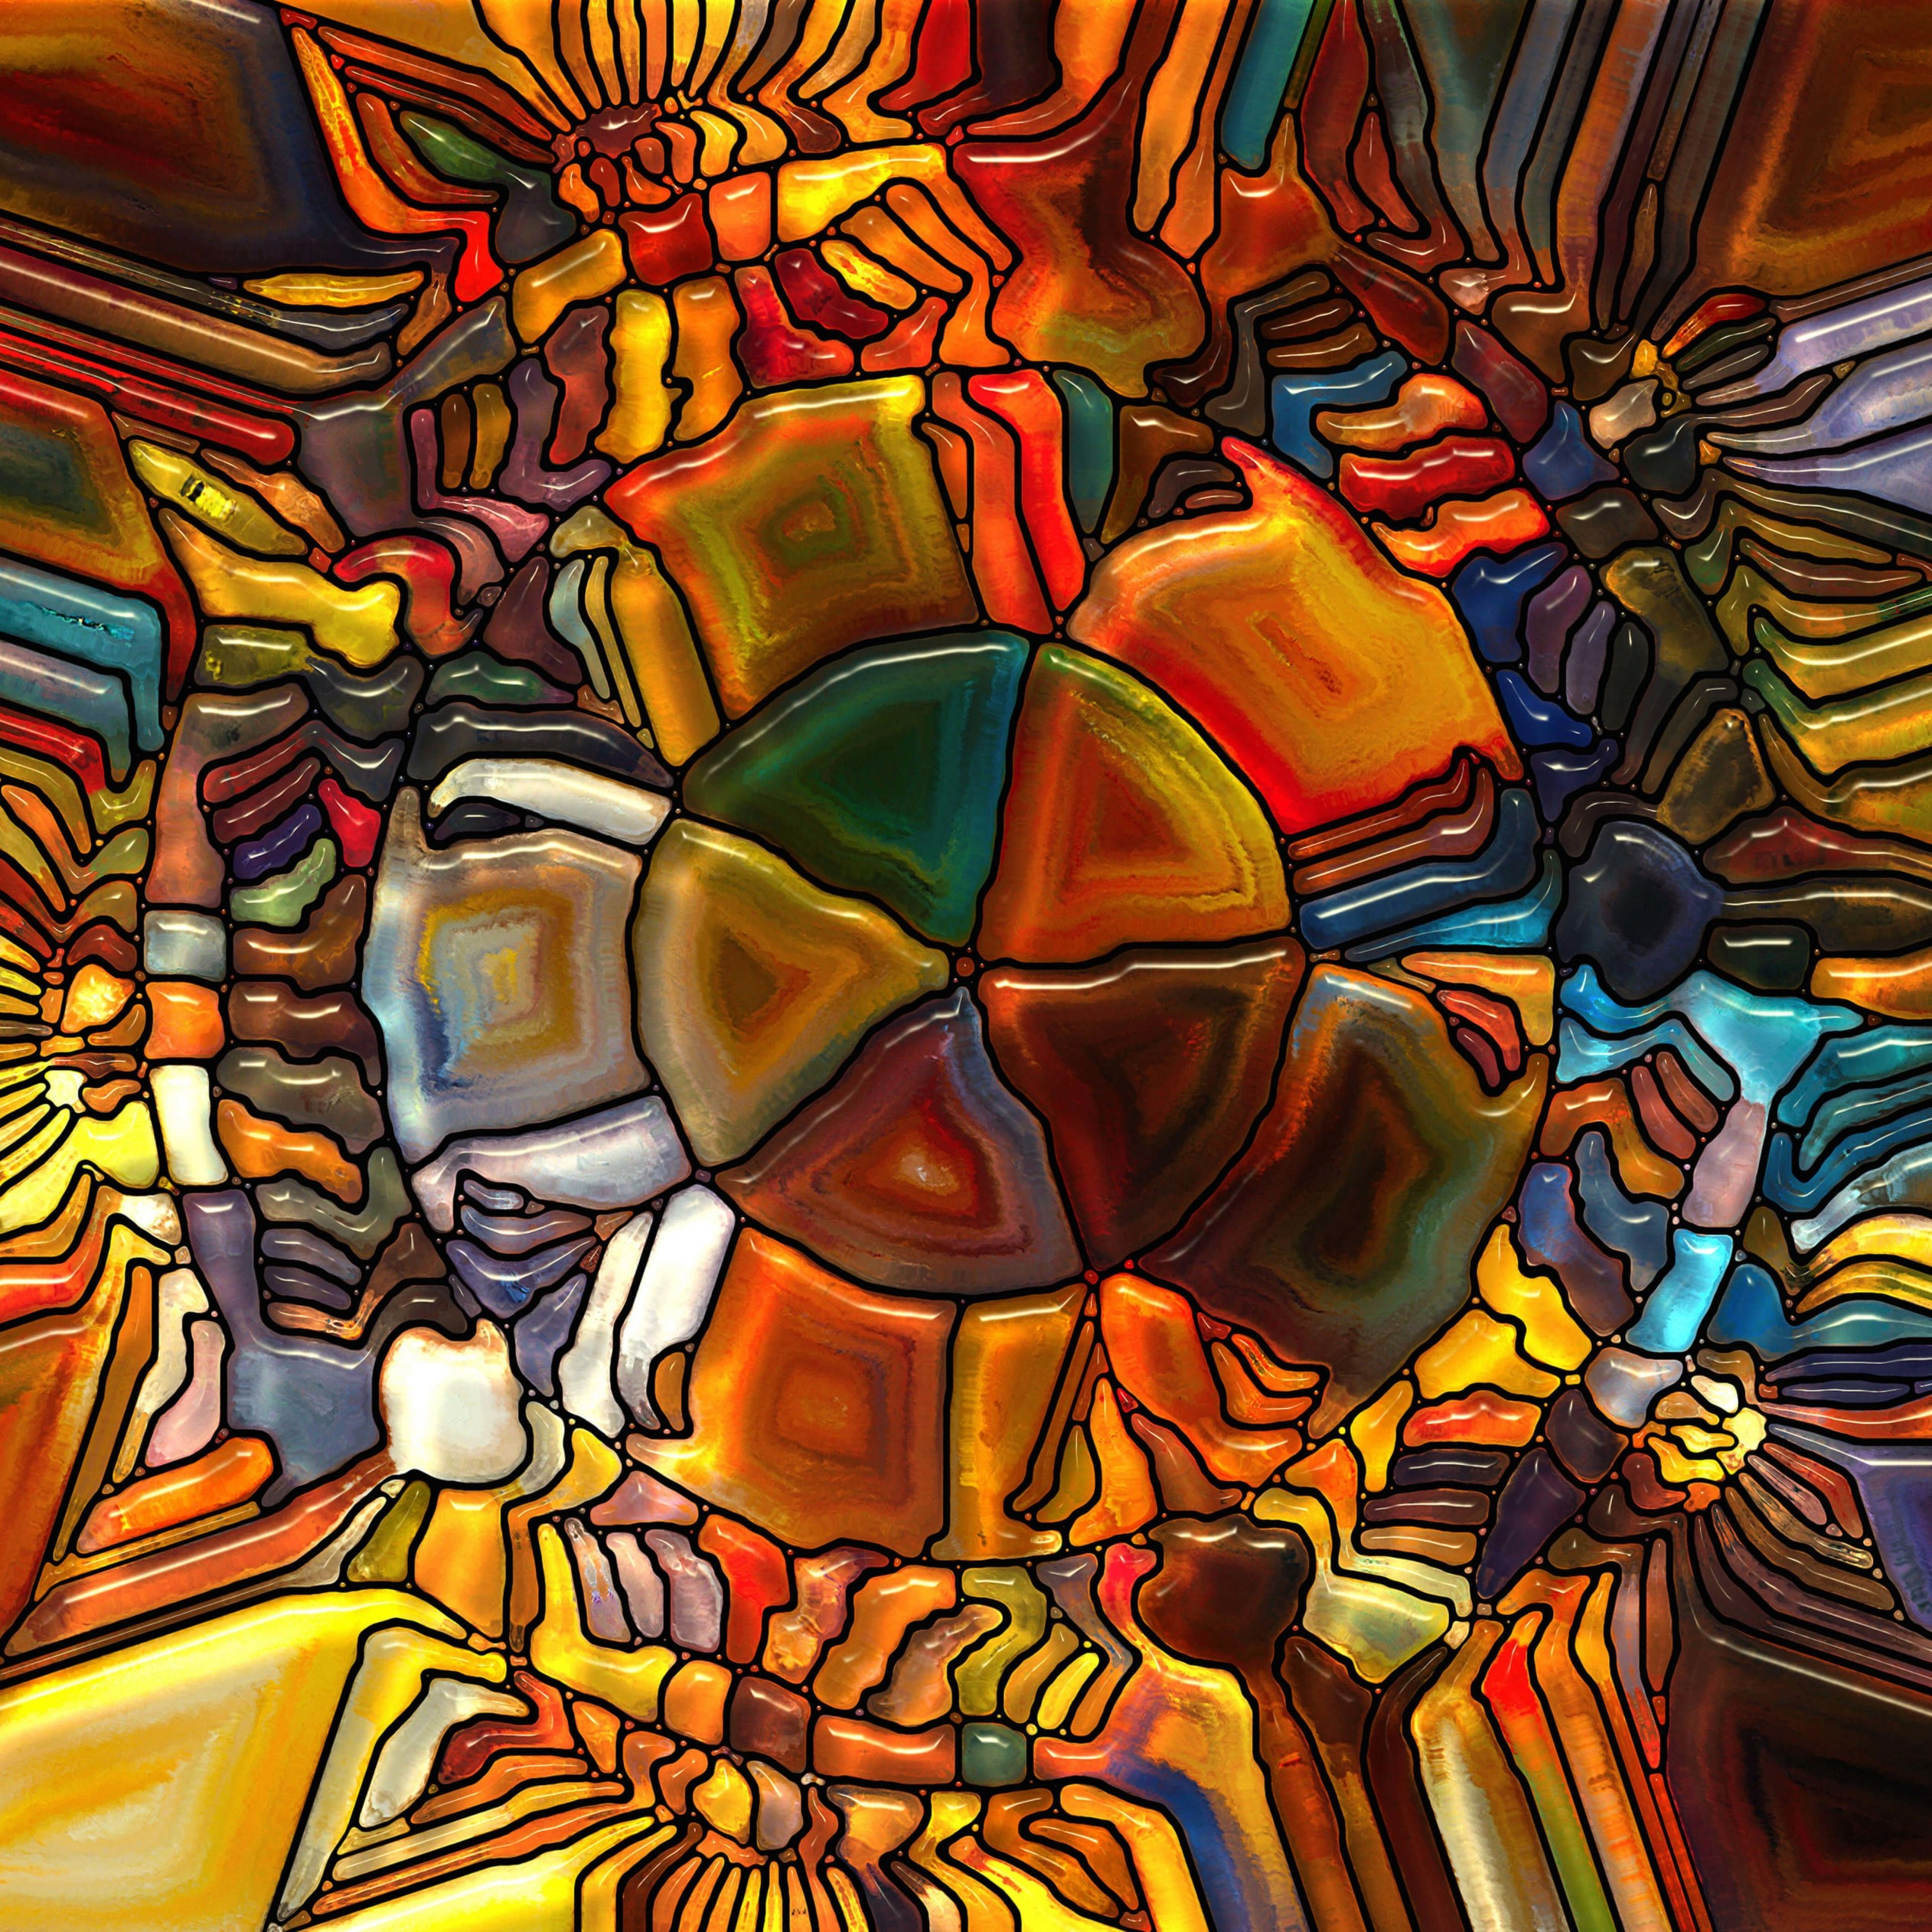 Psychedelic Stained Glass Wallpaper for Apple iPad 4